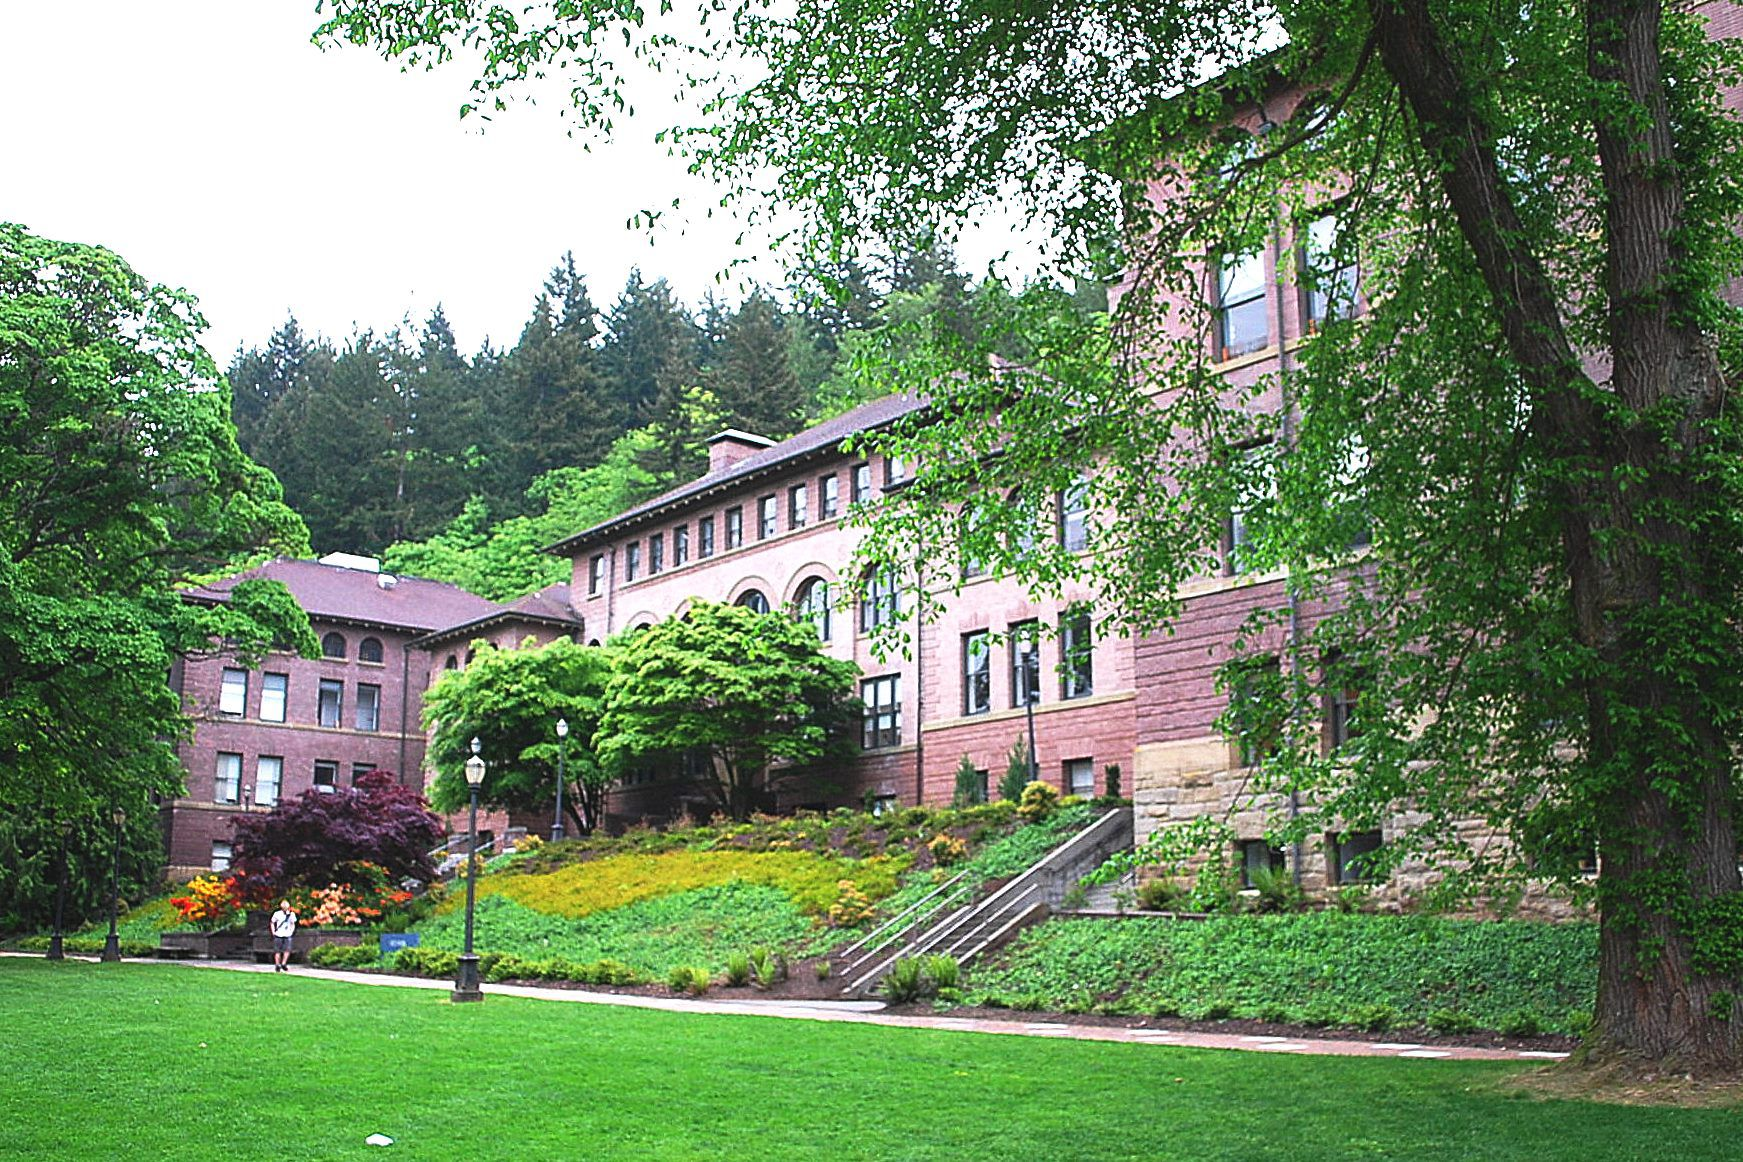 university of washington entrance essay College application essays is washington university in st louis a school on your college list if so, there's good news and bad news the good news is washu is one of few schools that don't require any supplemental essays the bad news is that means you need to have a strong personal statement.